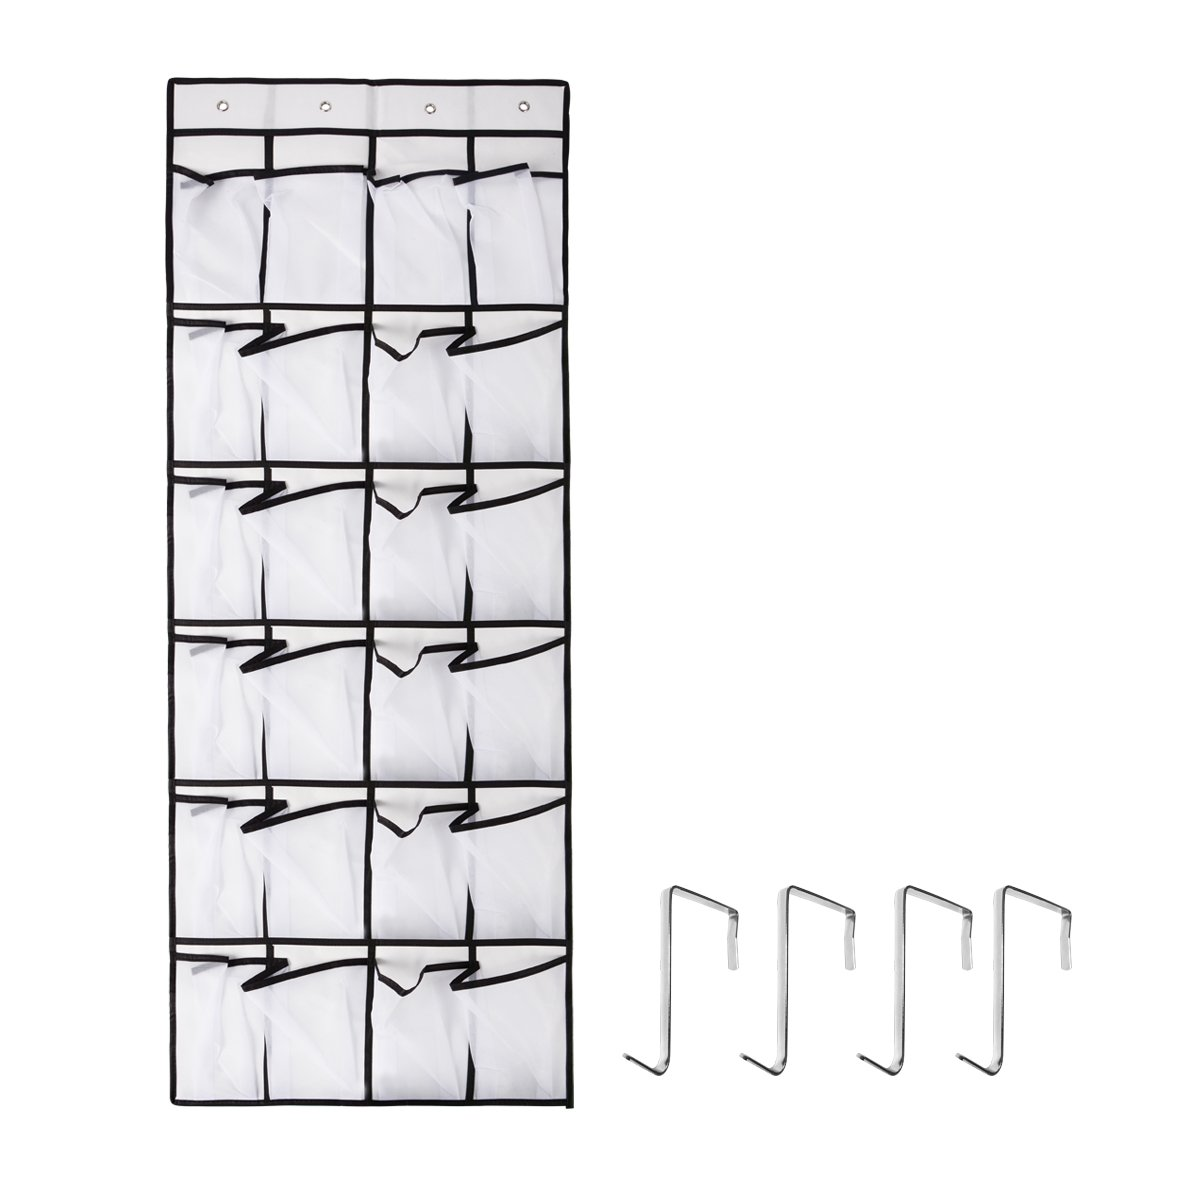 Penck Over The Door Shoe Organizer, 24 large Mesh Pockets | Heavy Duty Breathable Fabric | Hanging Tidy Storage Rack | Hang On with 4 Metal Hooks for Shoes, Closet, Laundry Room, Pantry, Bathroom G1BEJJ9010039